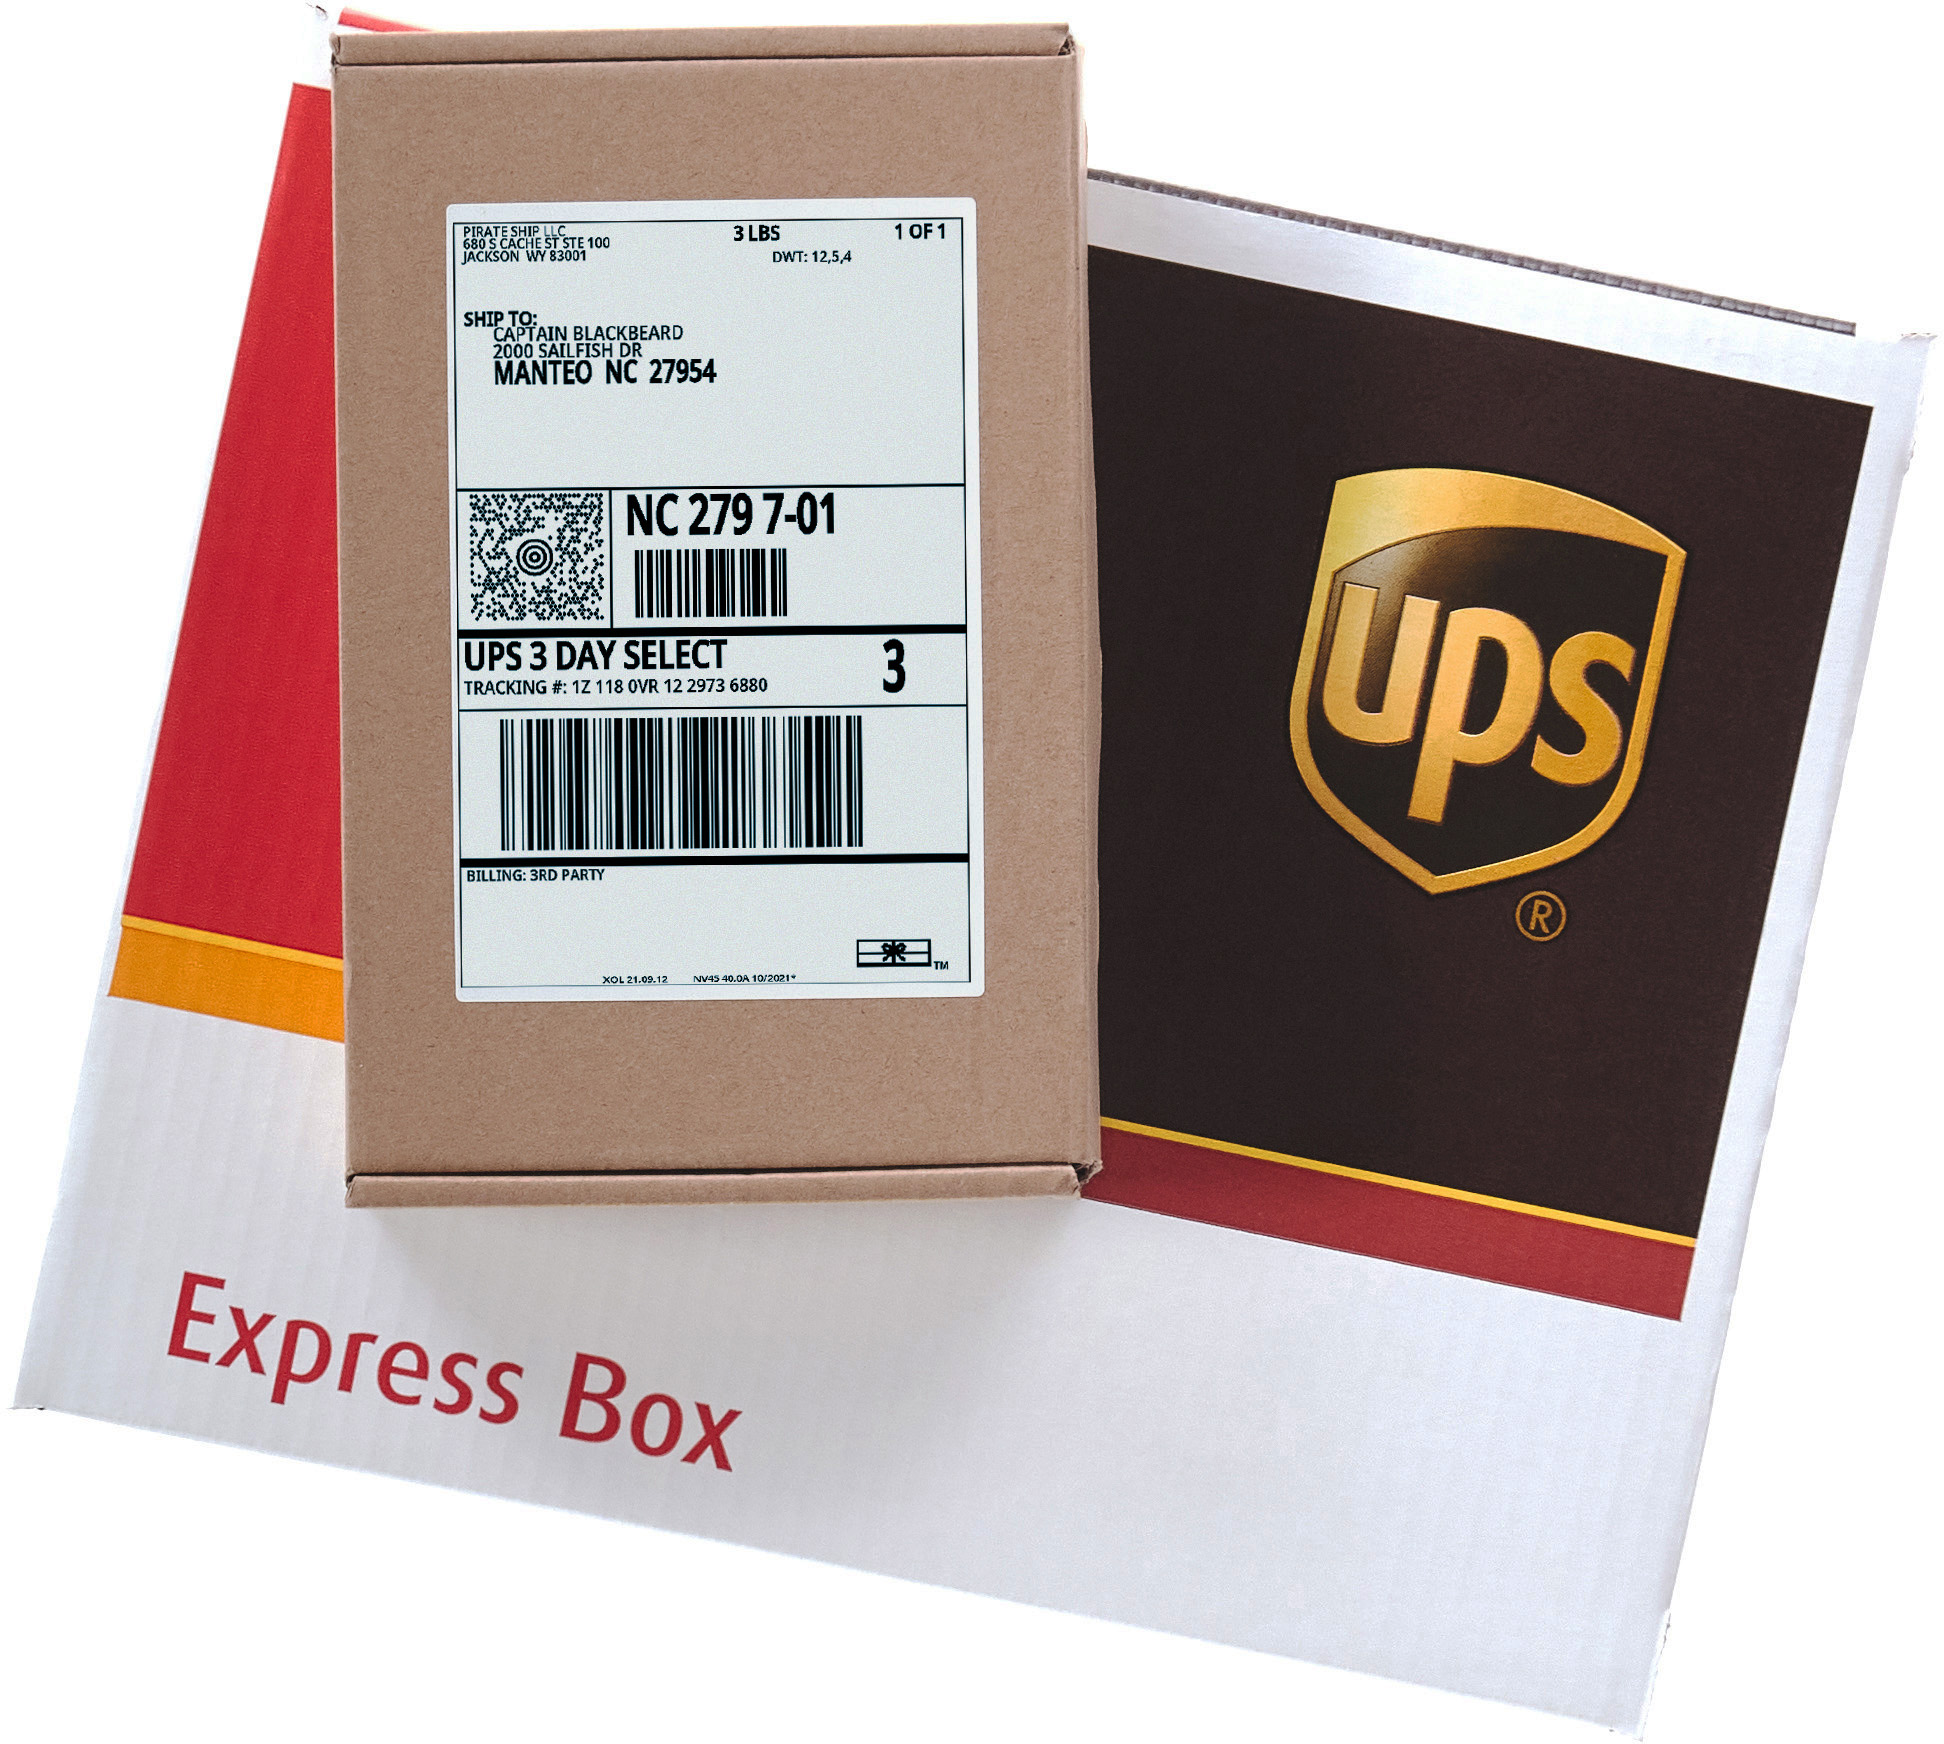 UPS 3 Day Select shipping label on a Express Box